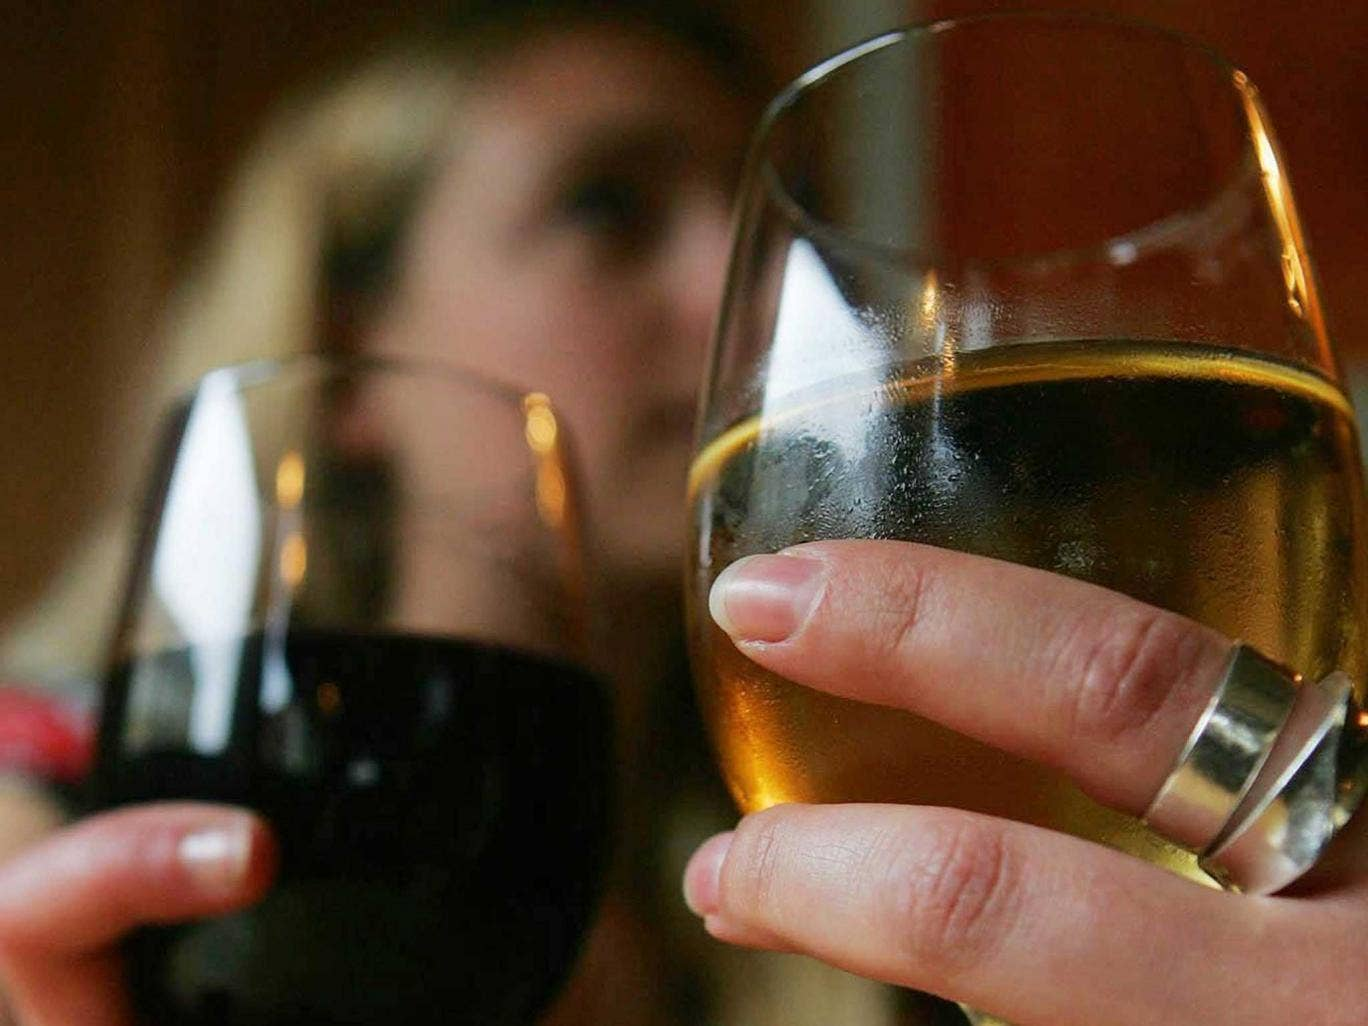 The number of alcohol-related deaths of women born in the 1970s has 'disproportionately increased' since the middle of the last decade